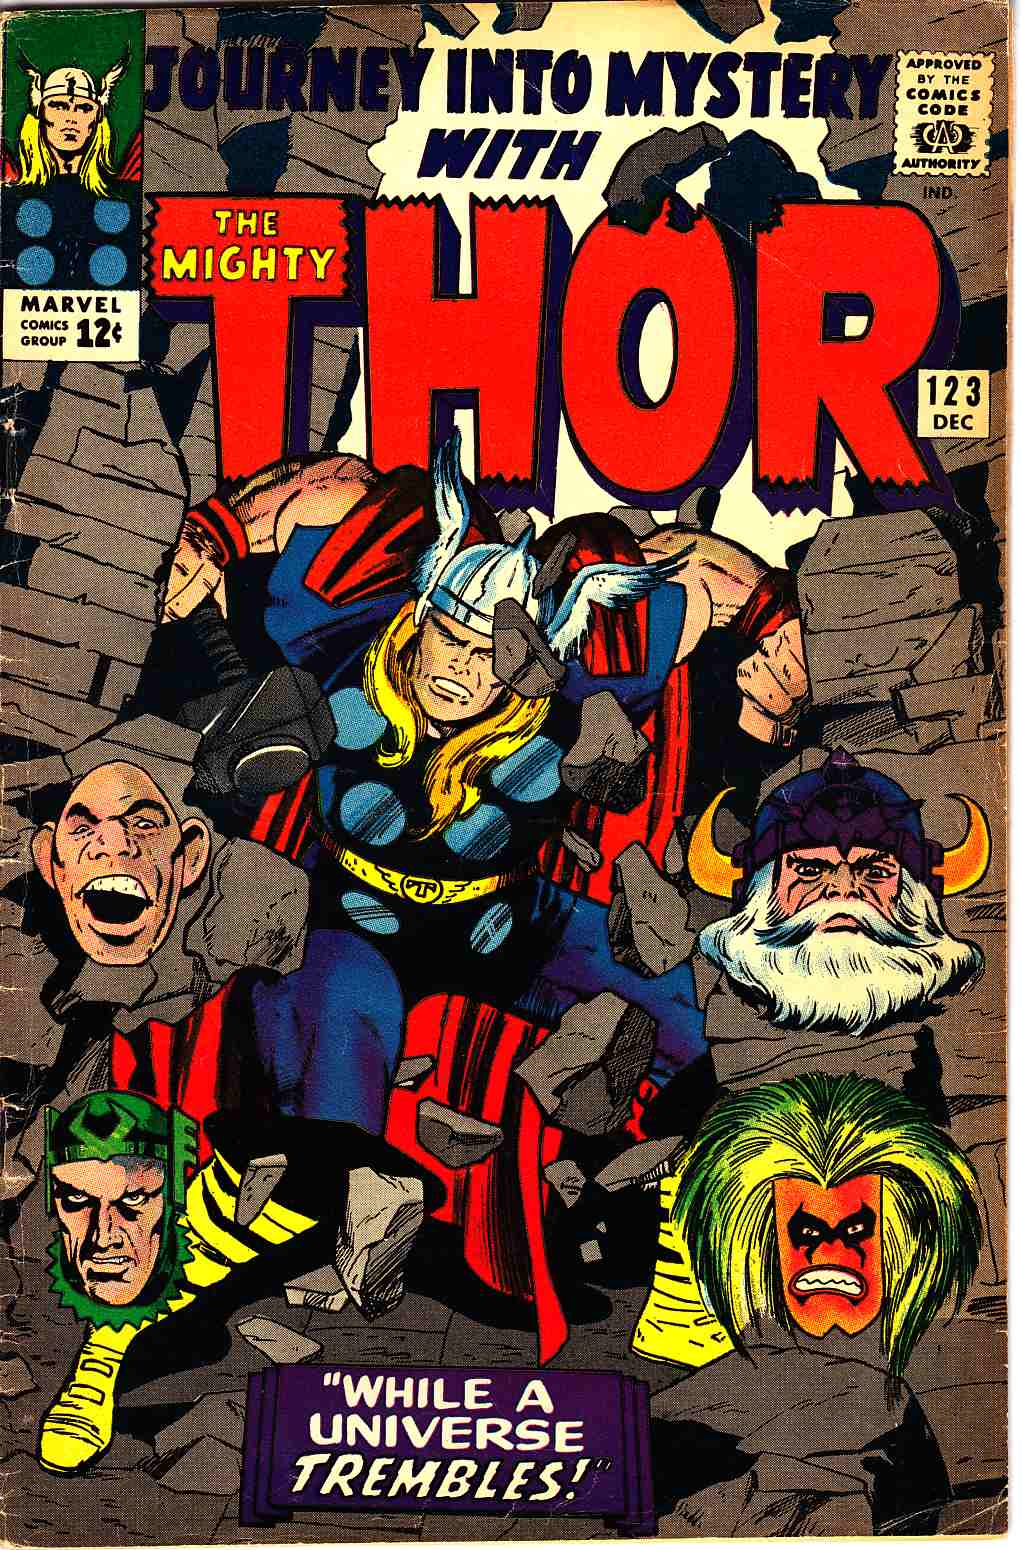 Journey Into Mystery Thor #123 Very Good/Fine (5.0) [Marvel Comic] THUMBNAIL